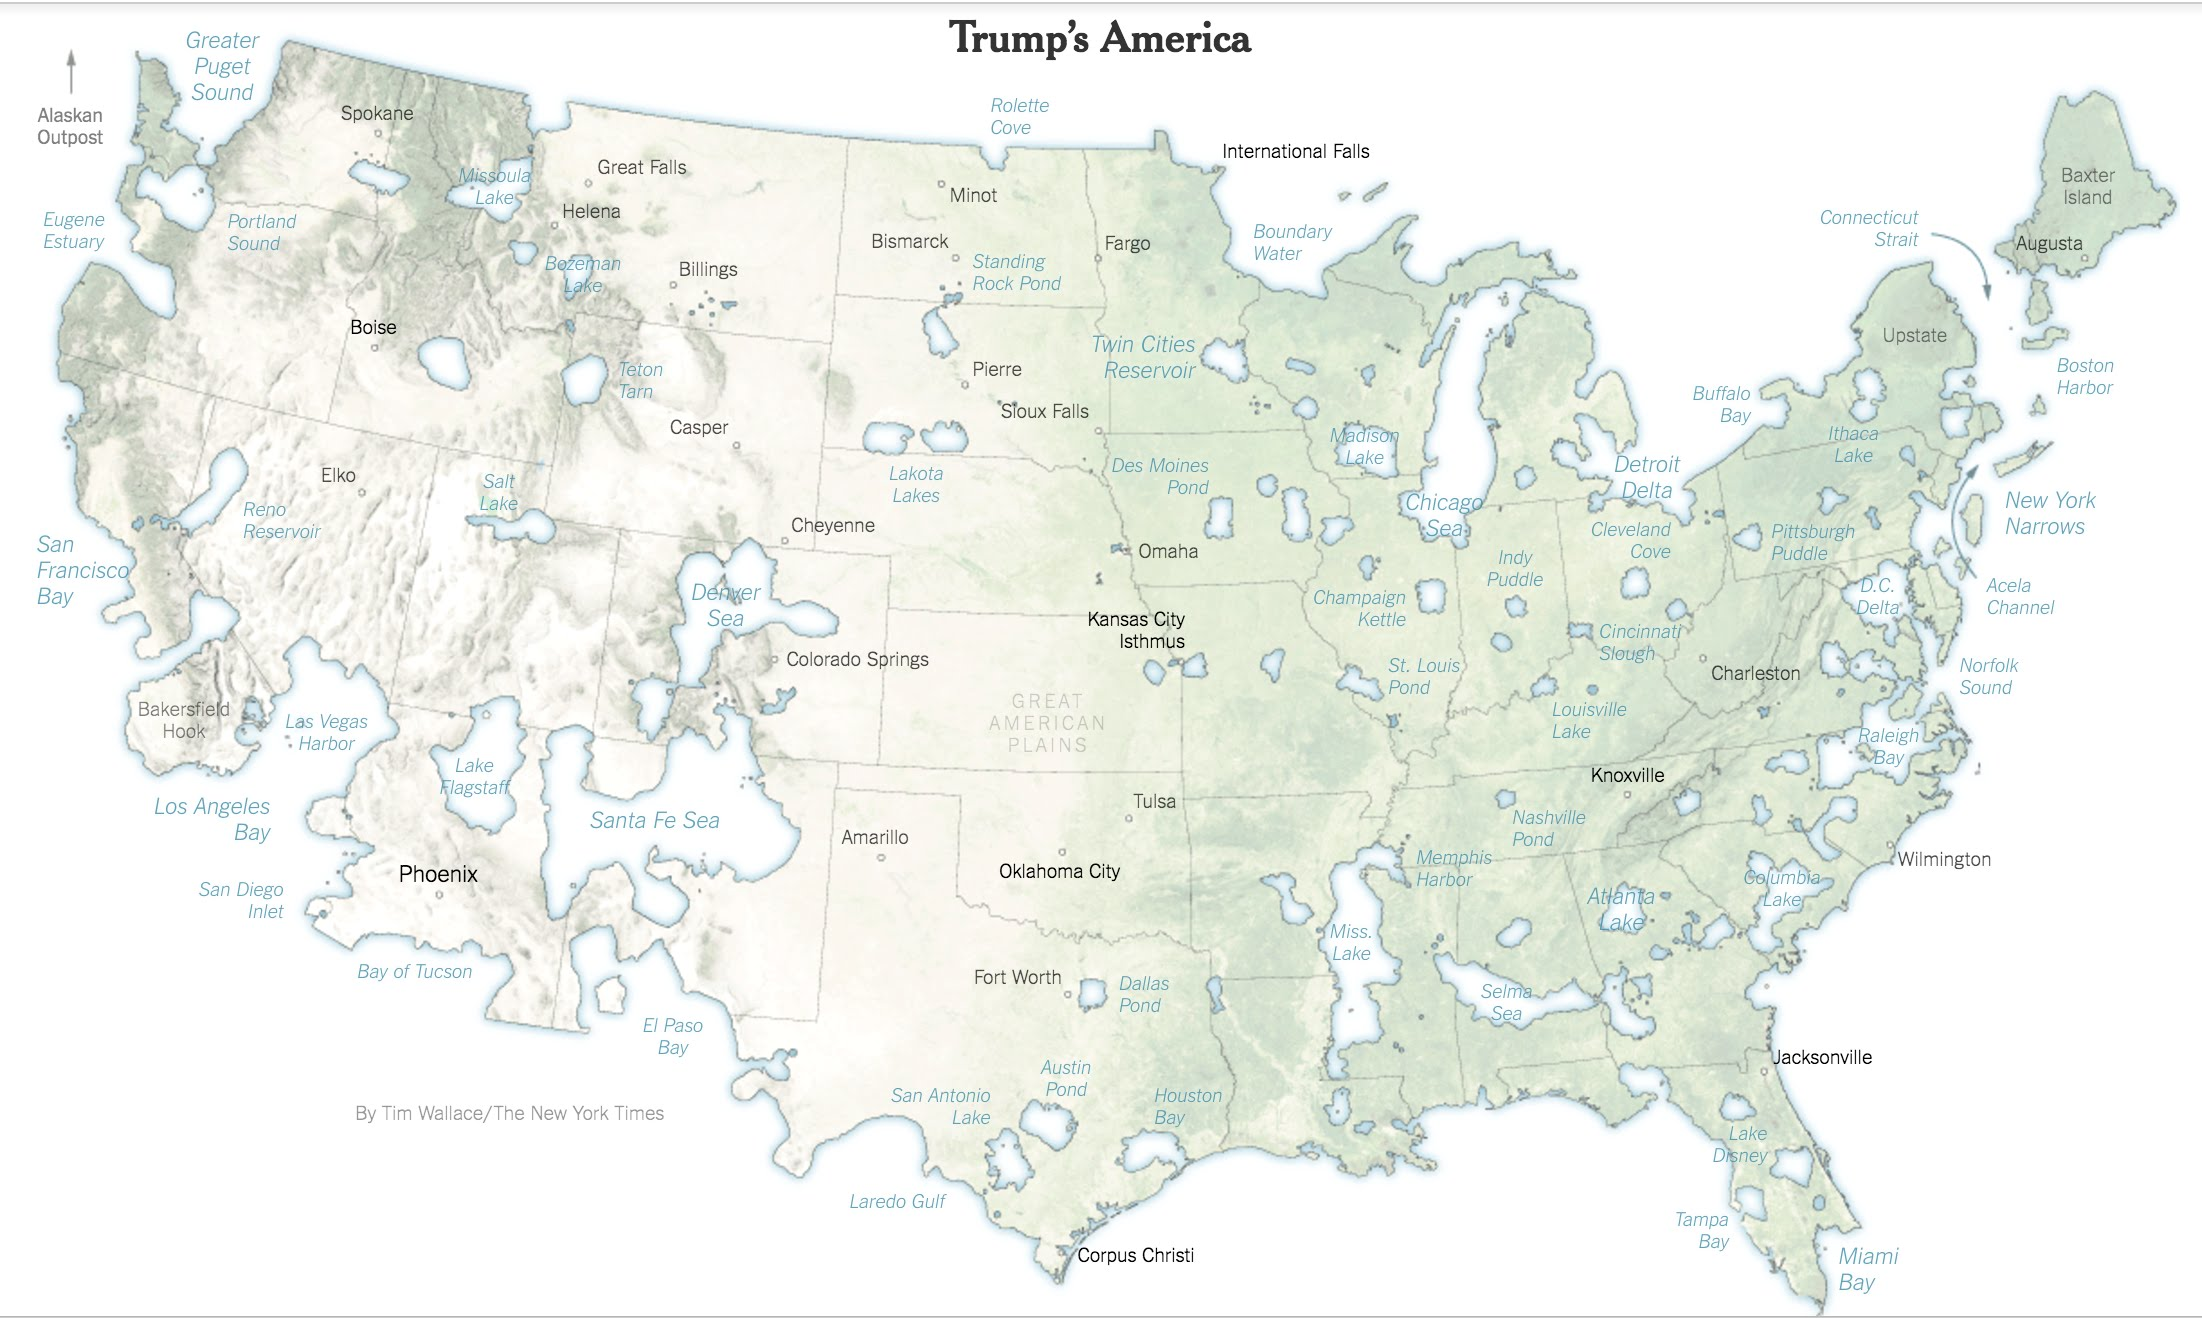 assignments mr rodriguez s class web site click on the maps below and carefully analyze the information about the election please answer the do now question what conclusions can you draw